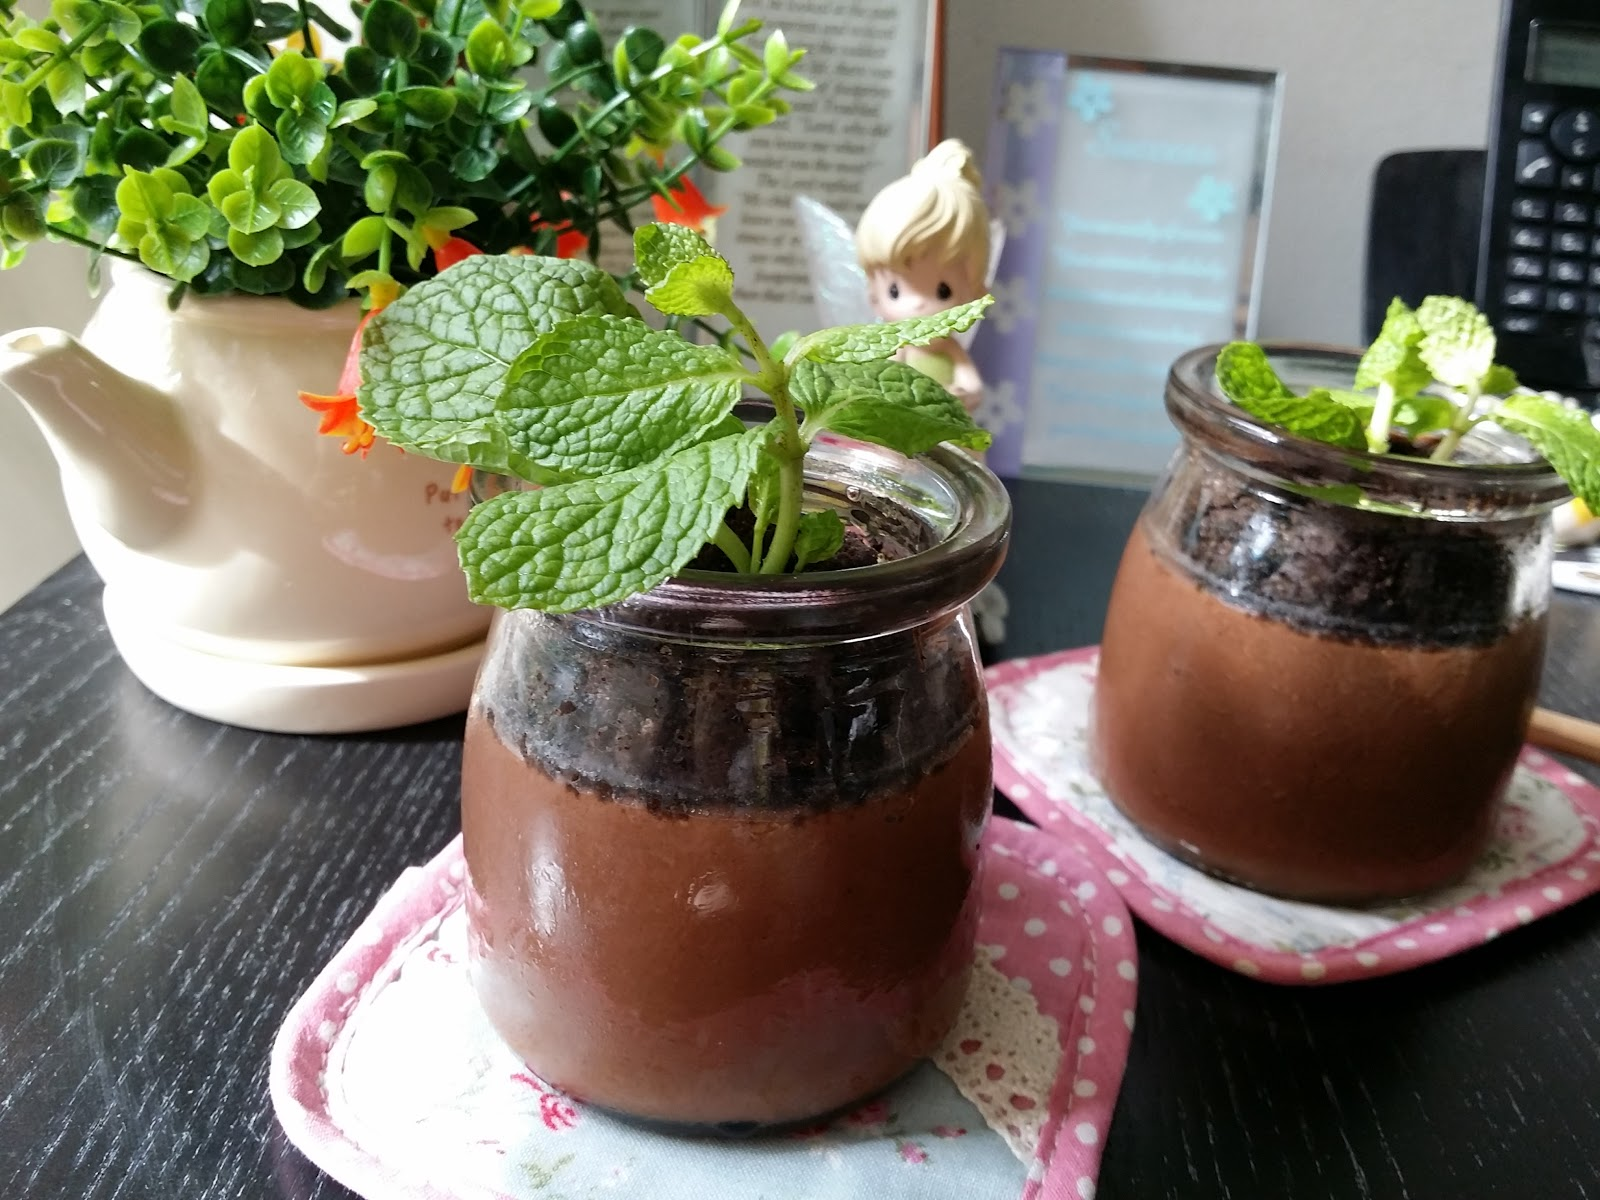 Luvswesavory: Potted Chocolate-Mint Puddings